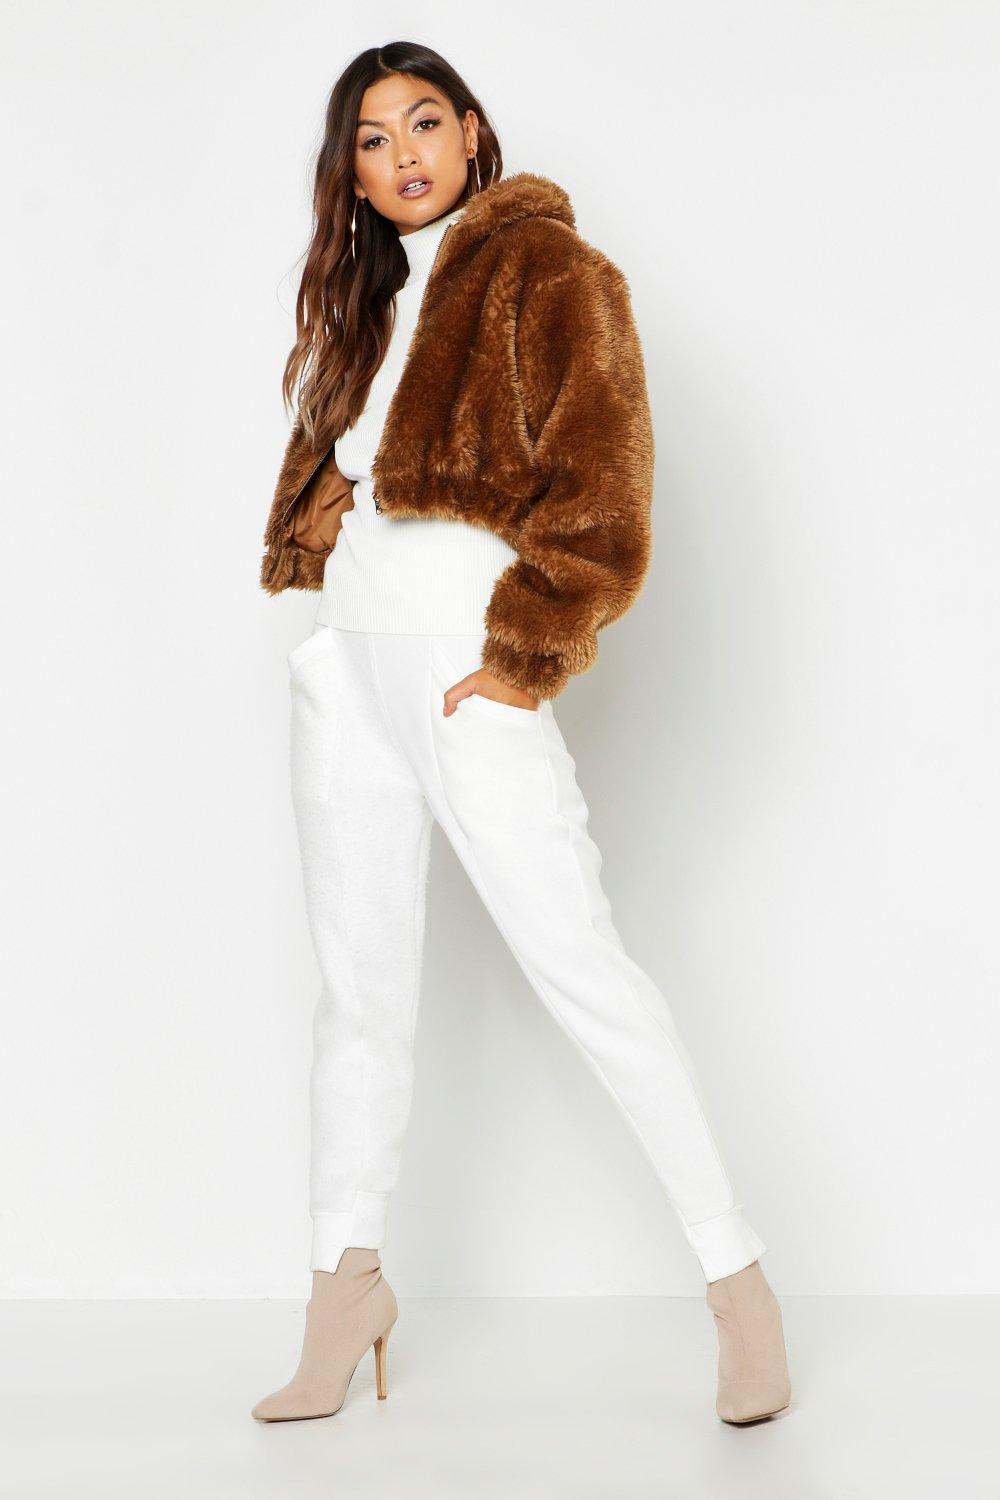 99ec04f0a68aa Boohoo - Multicolor Cropped Shaggy Faux Fur Bomber Jacket - Lyst. View  fullscreen